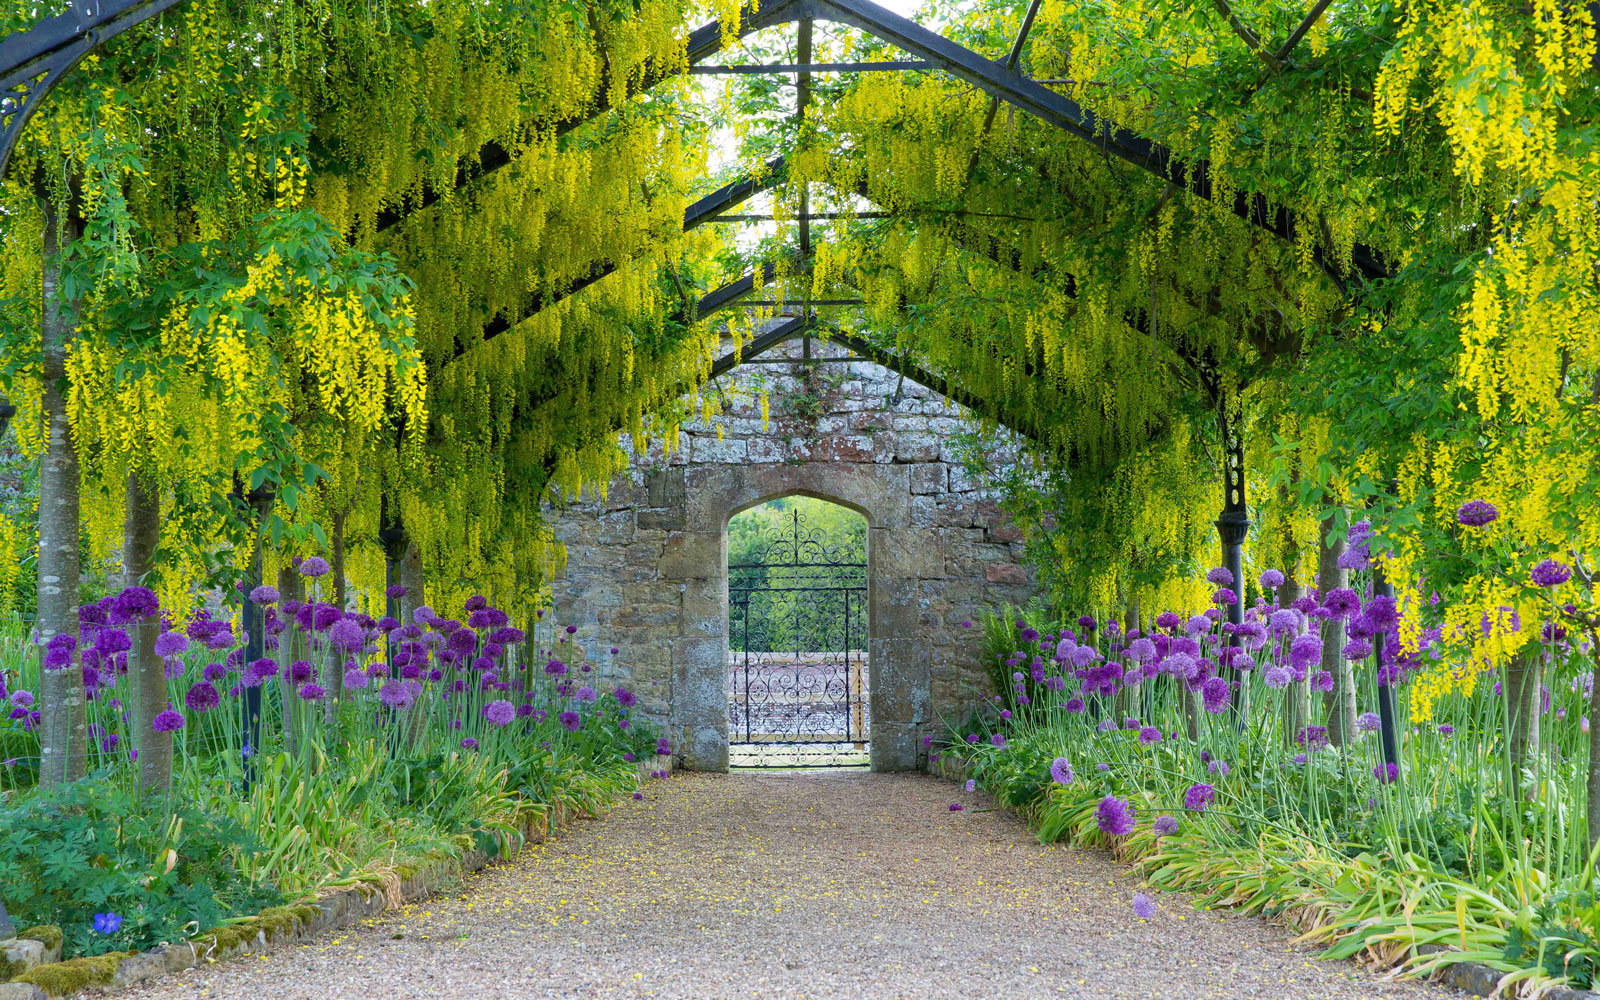 Laburnum Walk at Cowdray House